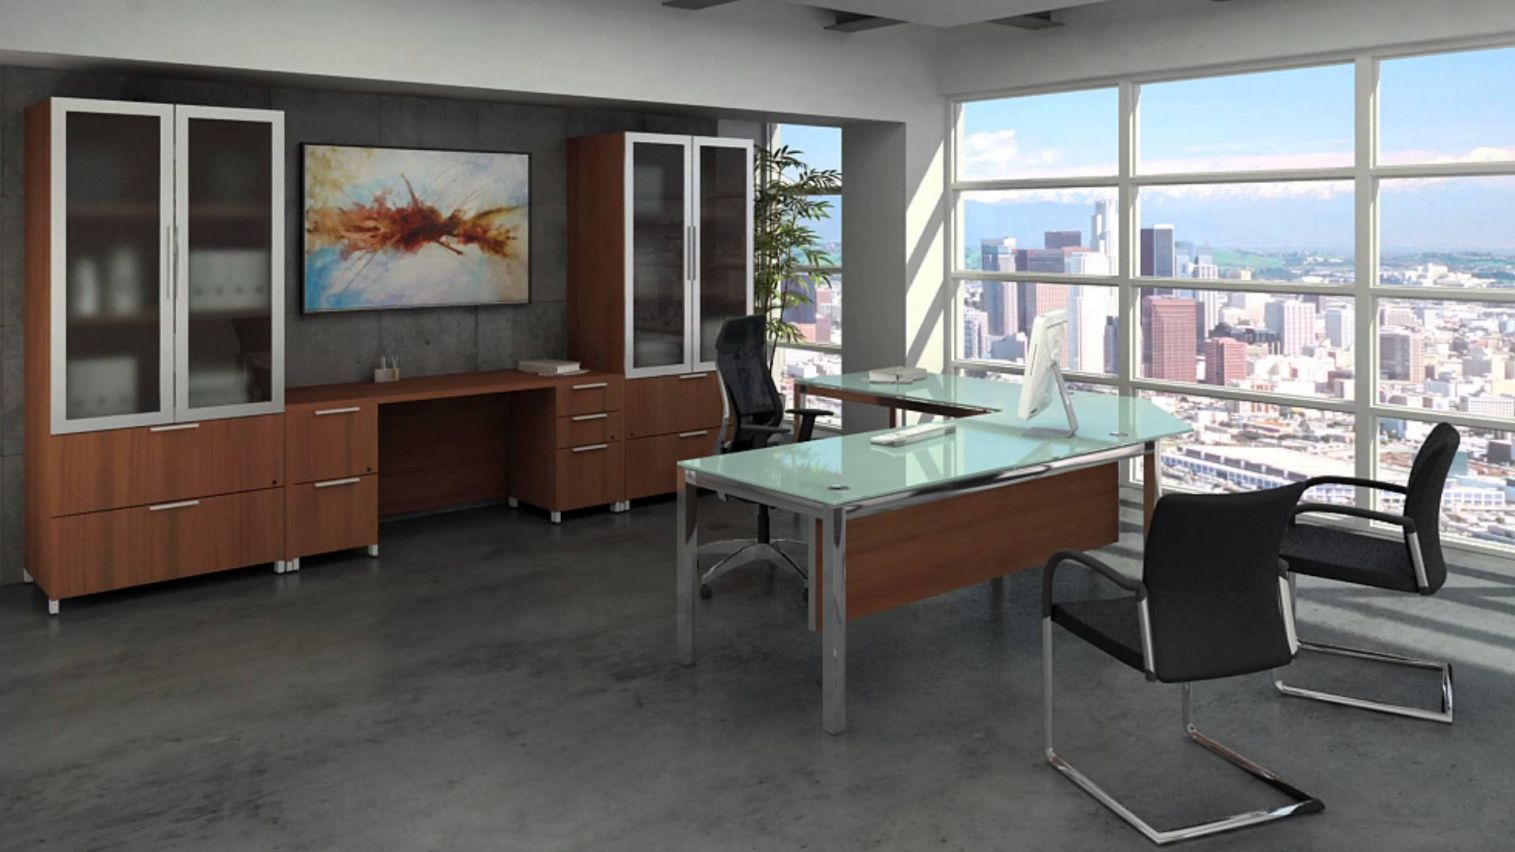 Superieur Small Executive Office Desks   Executive Home Office Furniture Check More  At Http://